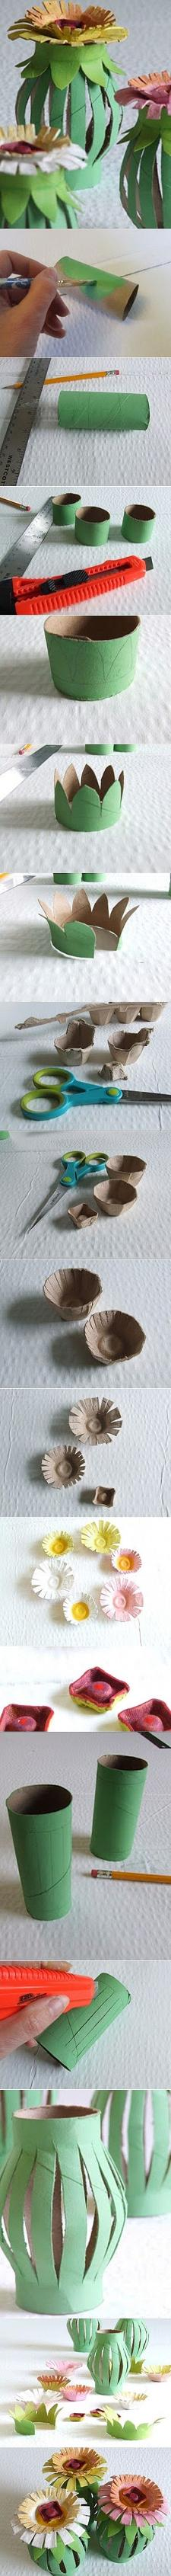 Jewelry craft ideas for Toilet paper roll jewelry box